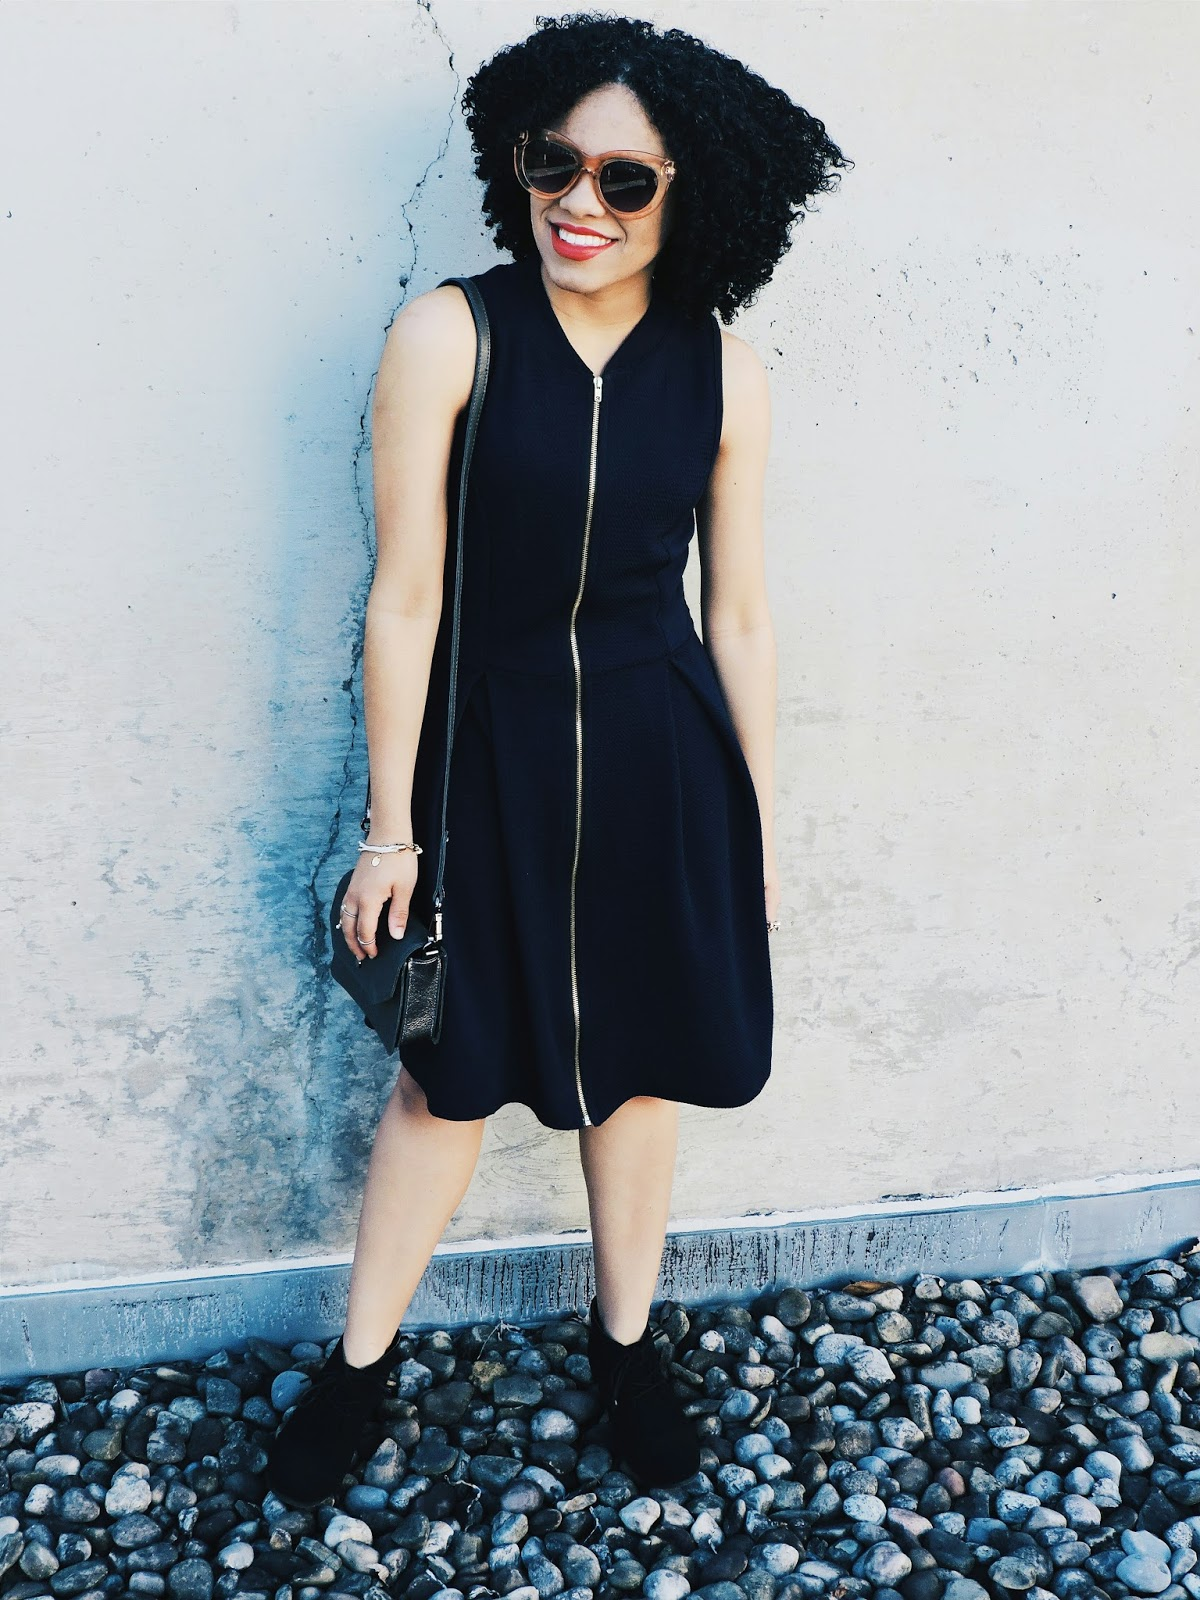 Chic little navy blue dress fashion revolutionary dress asos bag neiman marcus sunglasses forever 21 shoes dsw ombrellifo Image collections